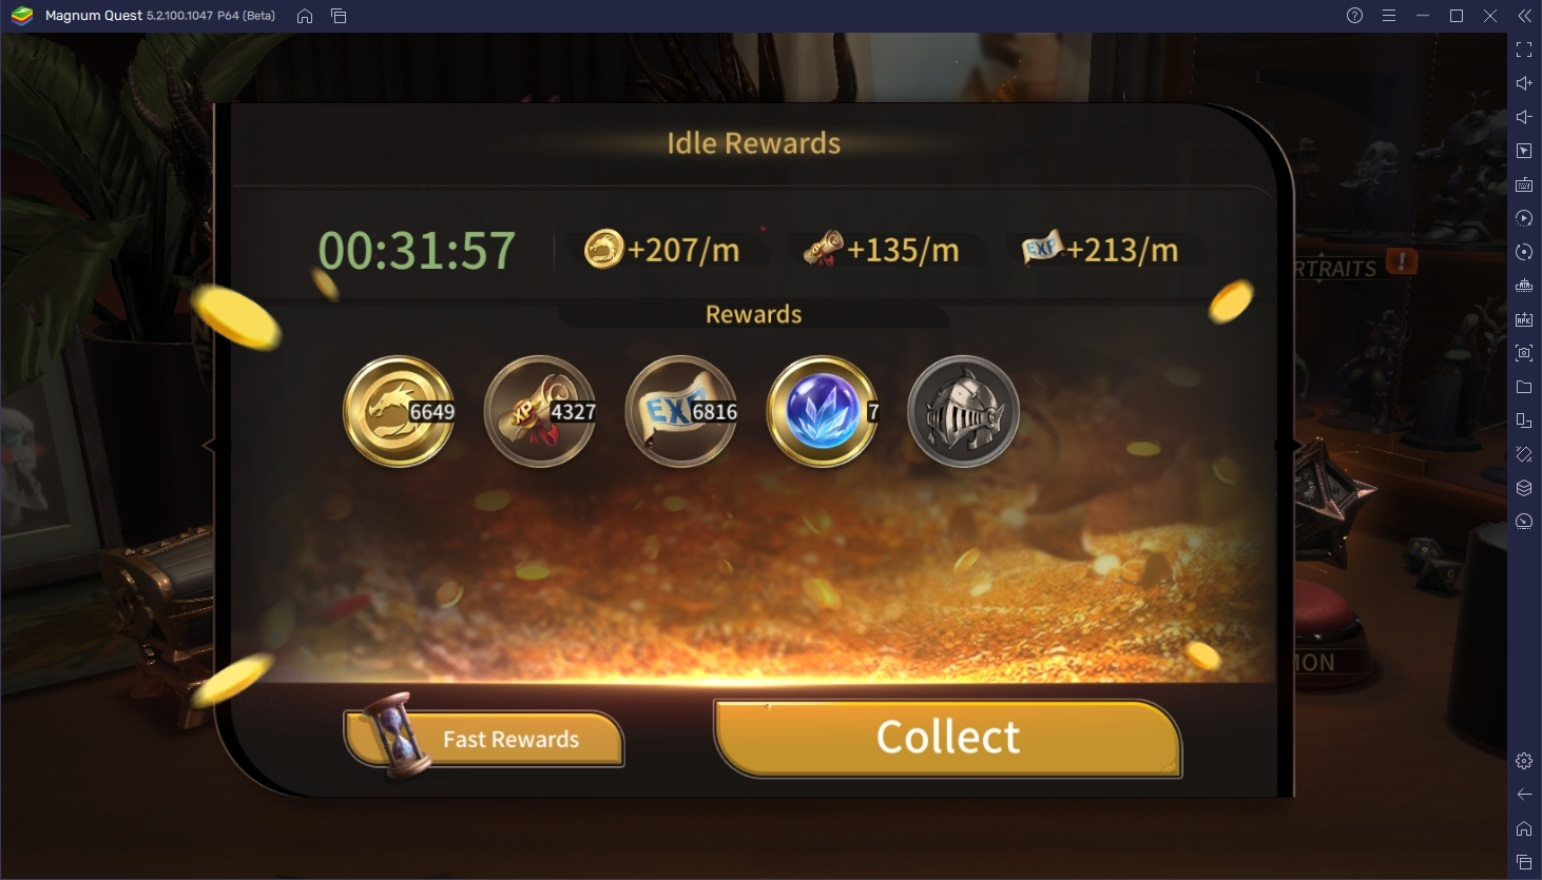 BlueStacks Beginner's Guide to Playing Magnum Quest